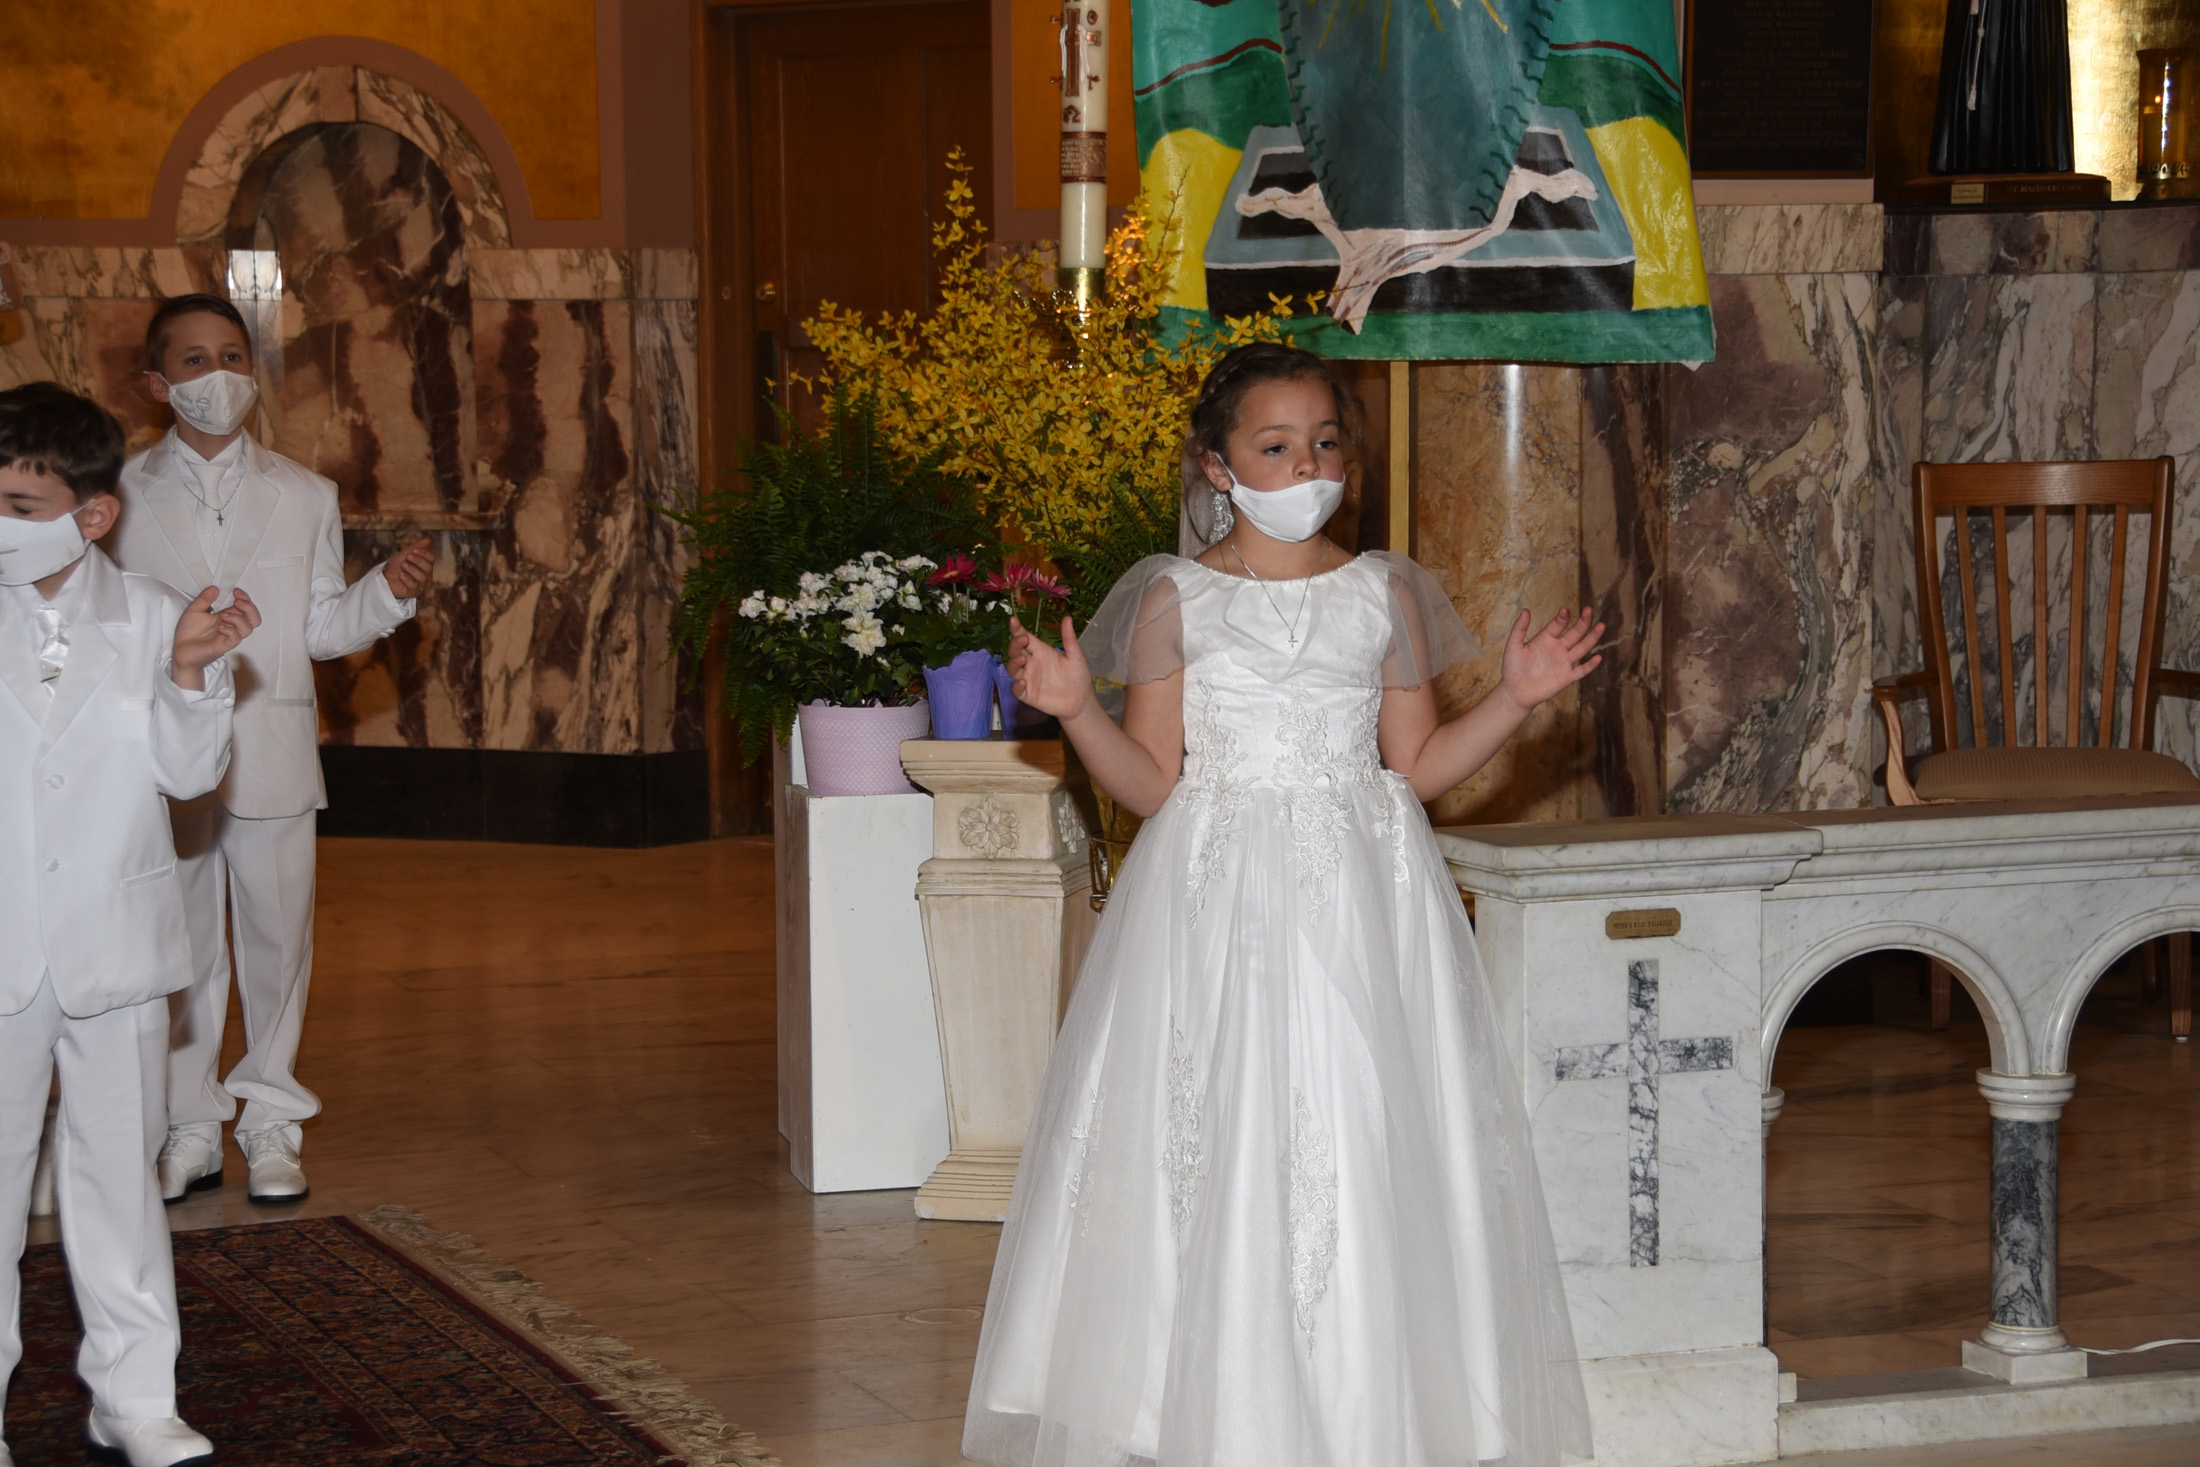 FIRST-COMMUNION-MAY-2-2021-1001001223